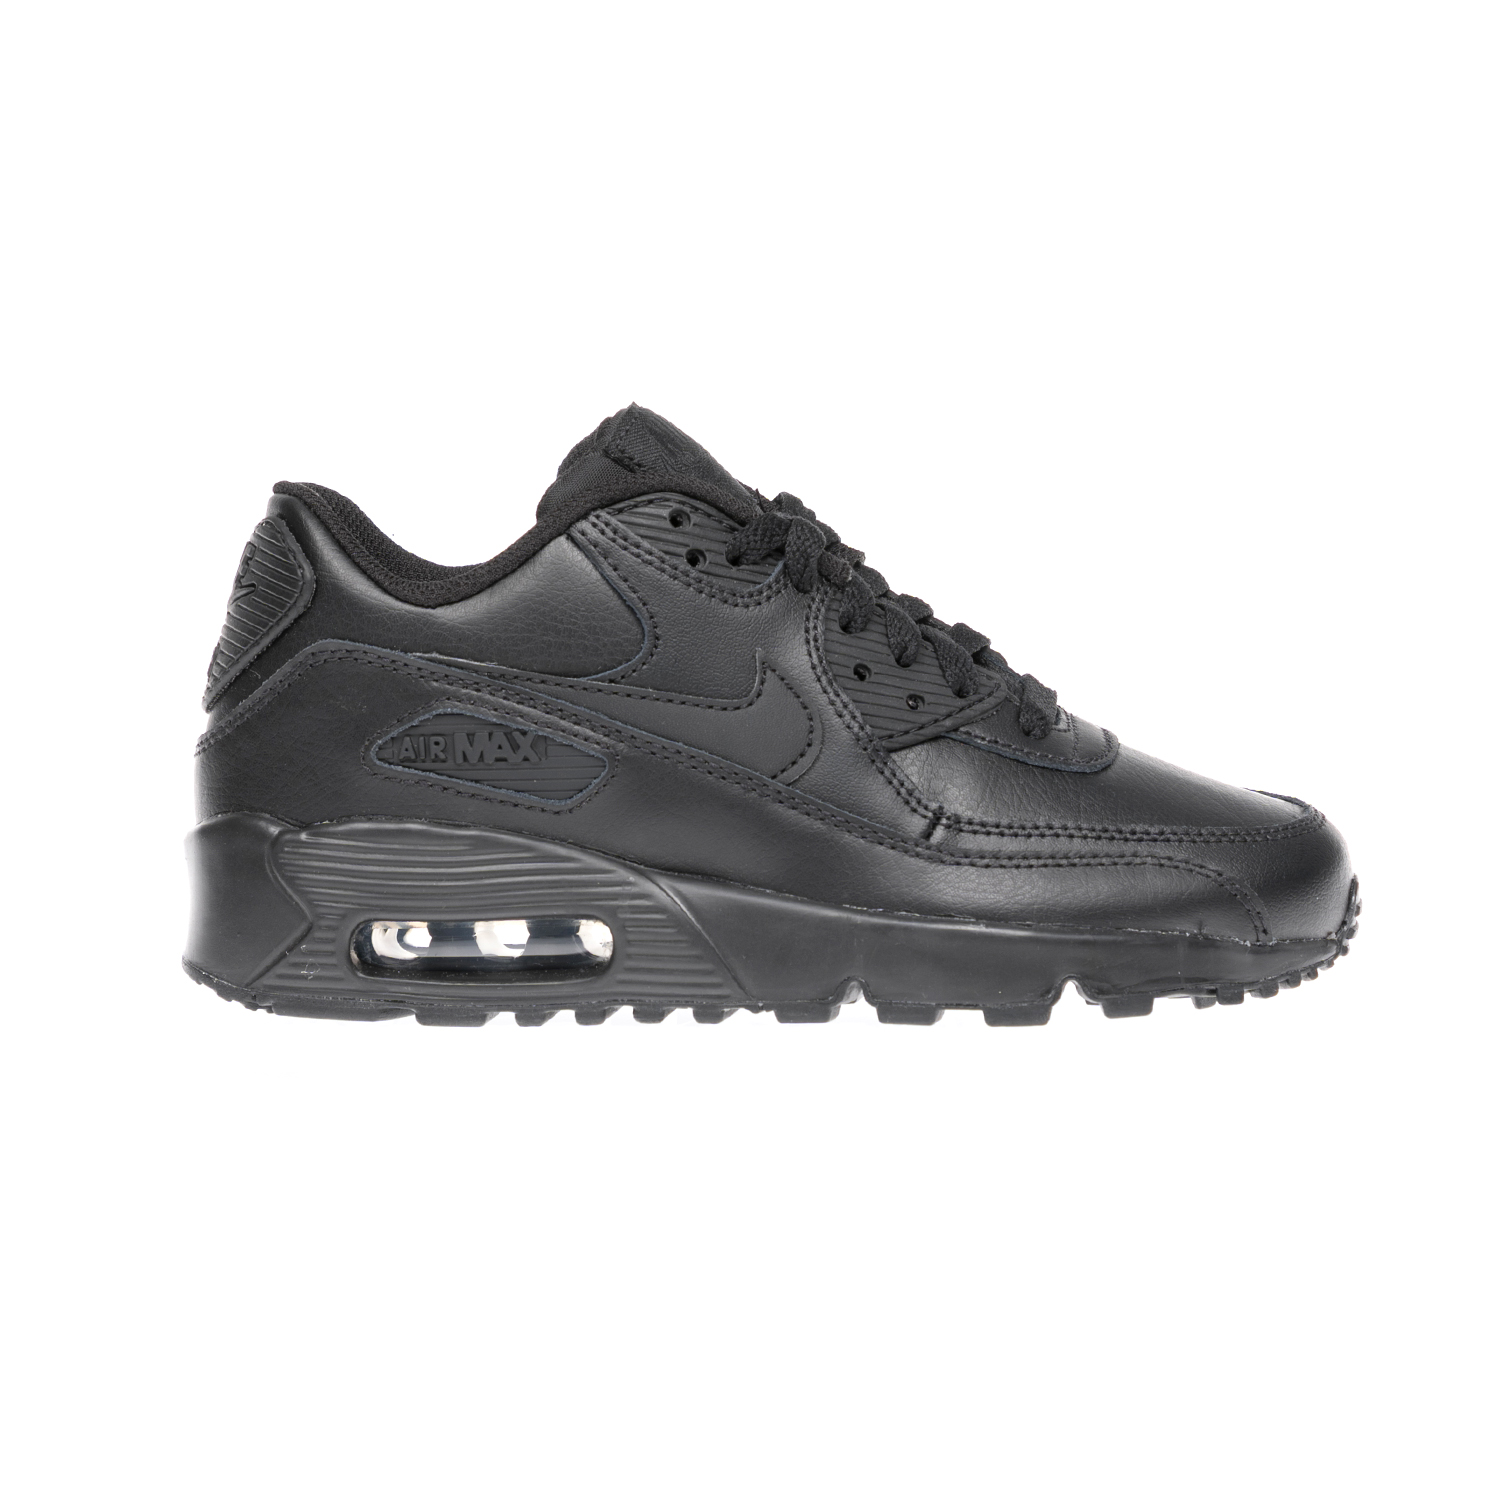 NIKE – Παιδικά παπούτσια NIKE AIR MAX 90 LTR (GS) μαύρα